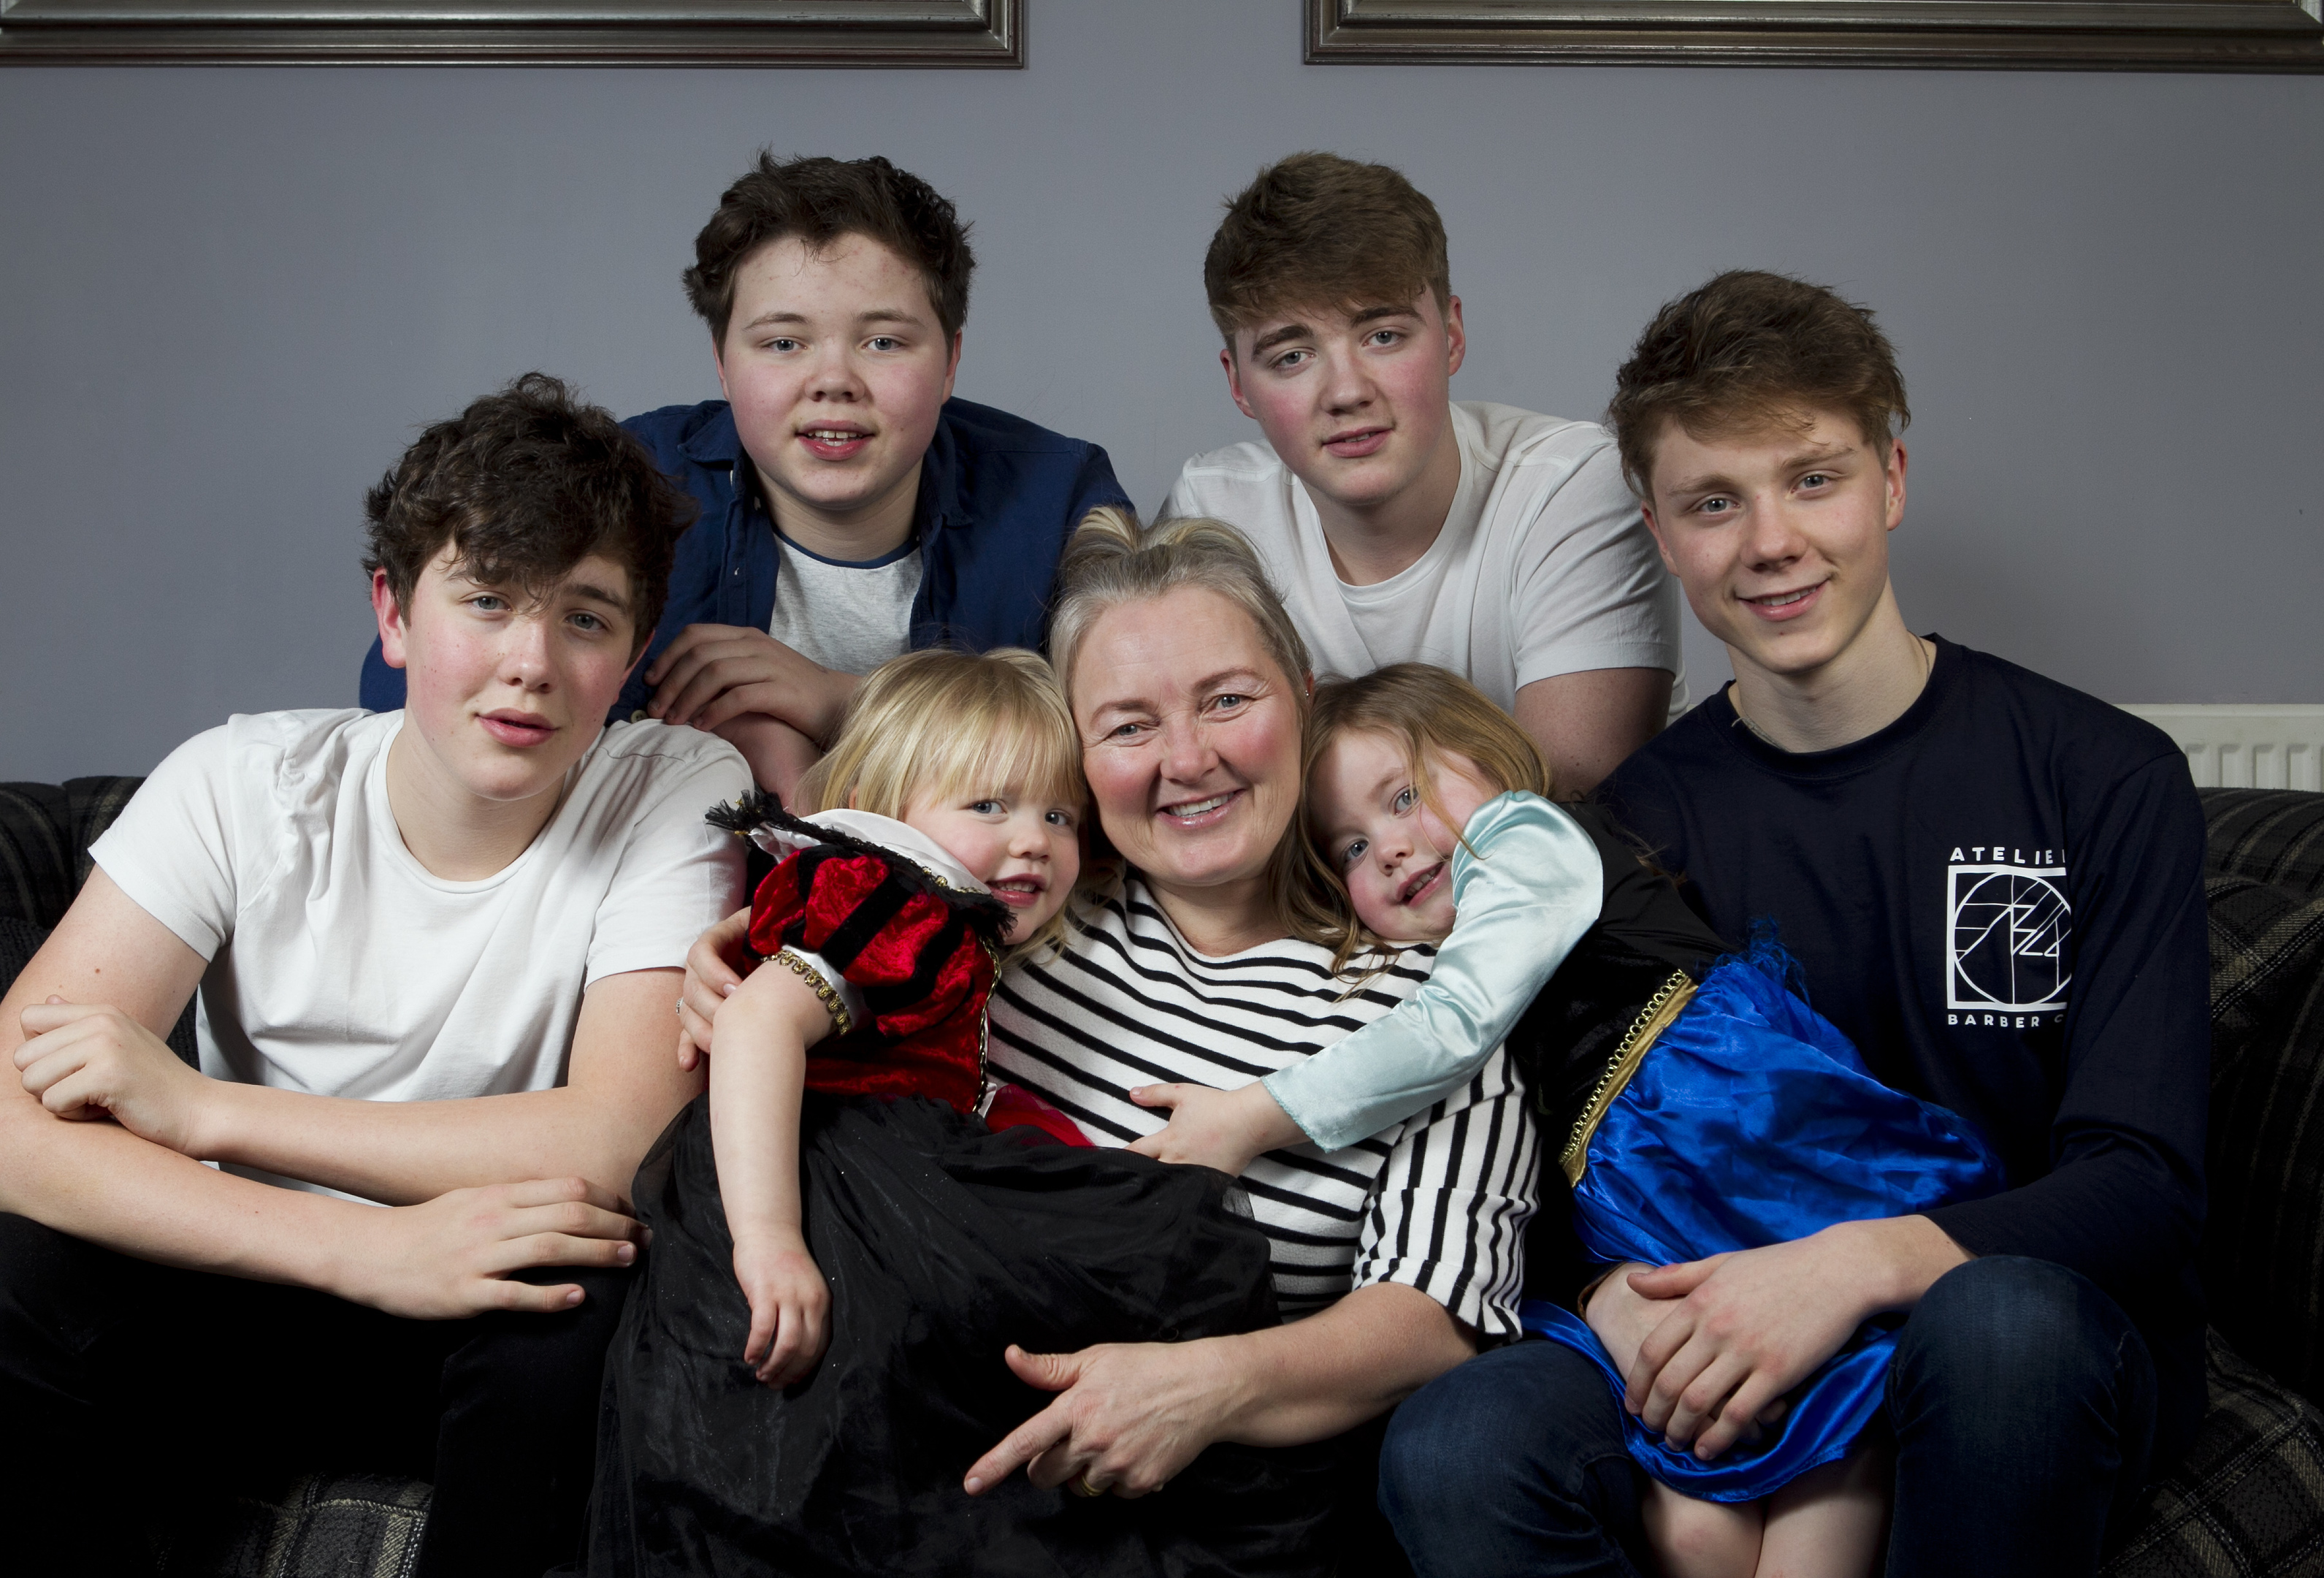 Karen Rodger and her three sets of twins: Lewis, Kyle, Finn, Jude, and girls Isla and Rowan (Andrew Cawley / DC Thomson)